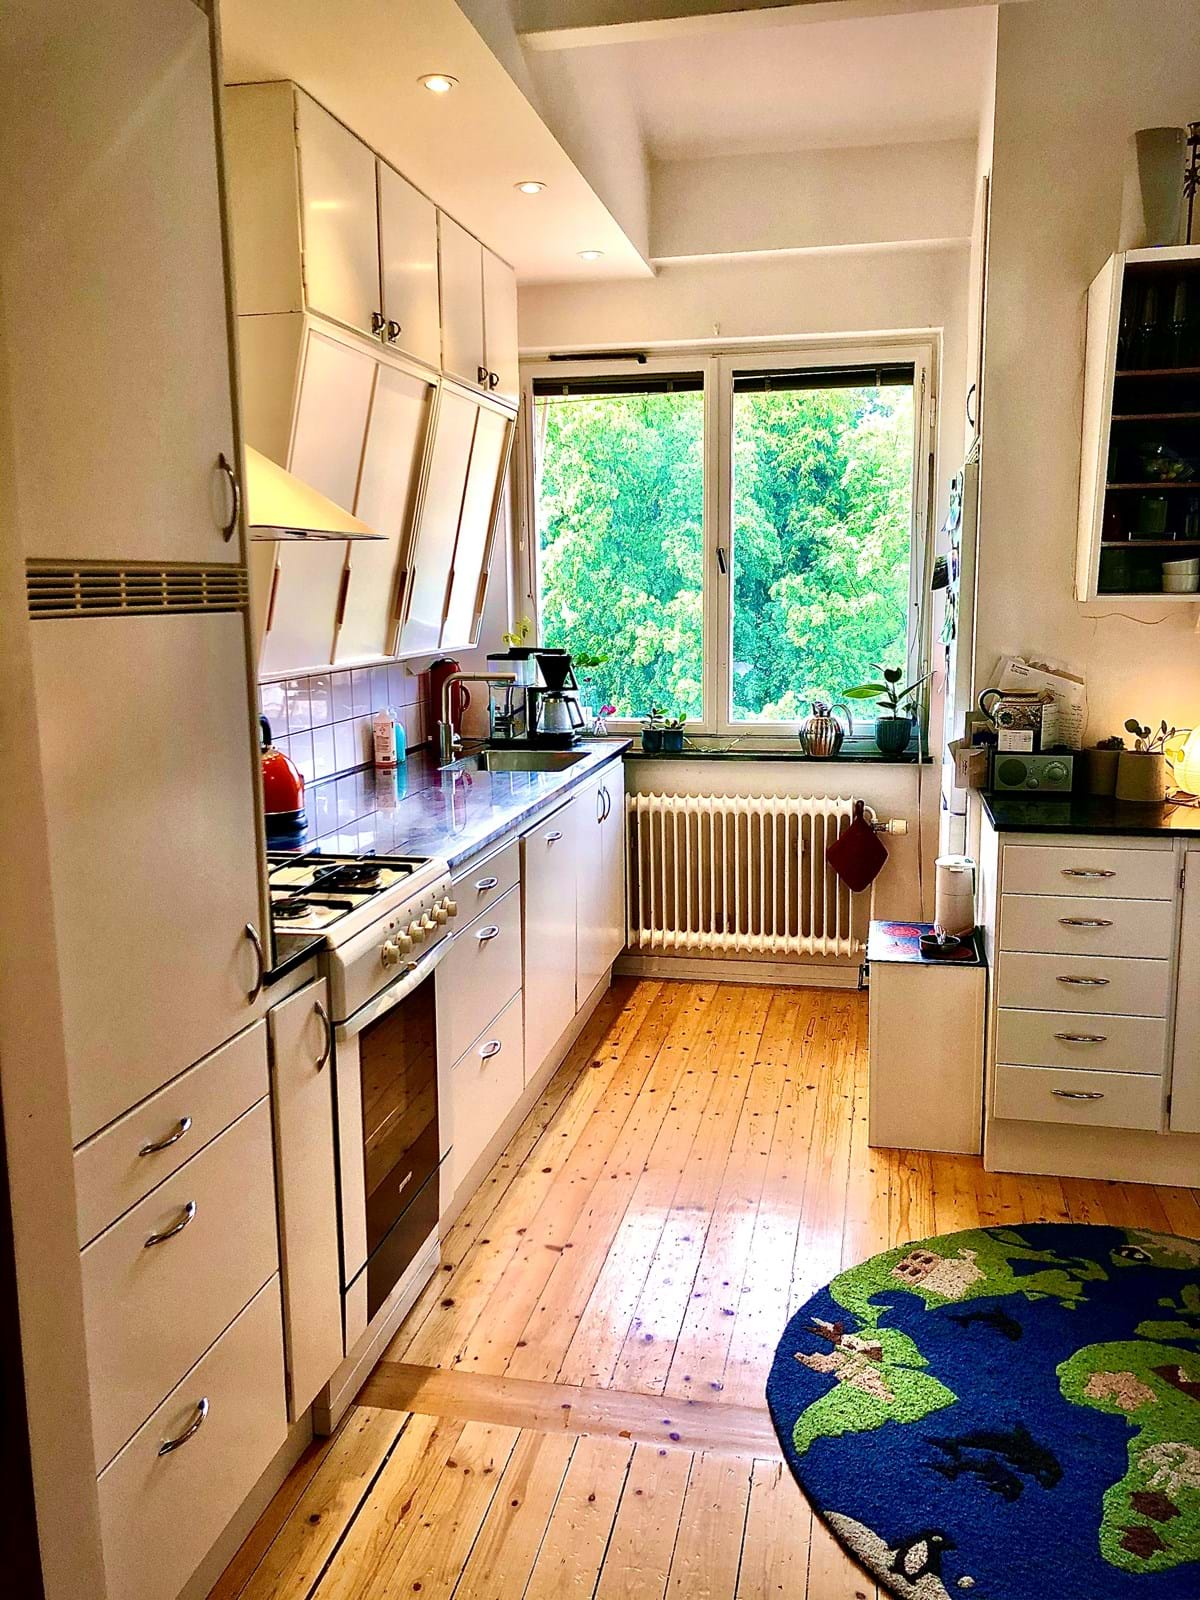 Hgalid Long/Short Stay - Apartments for Rent in - Airbnb